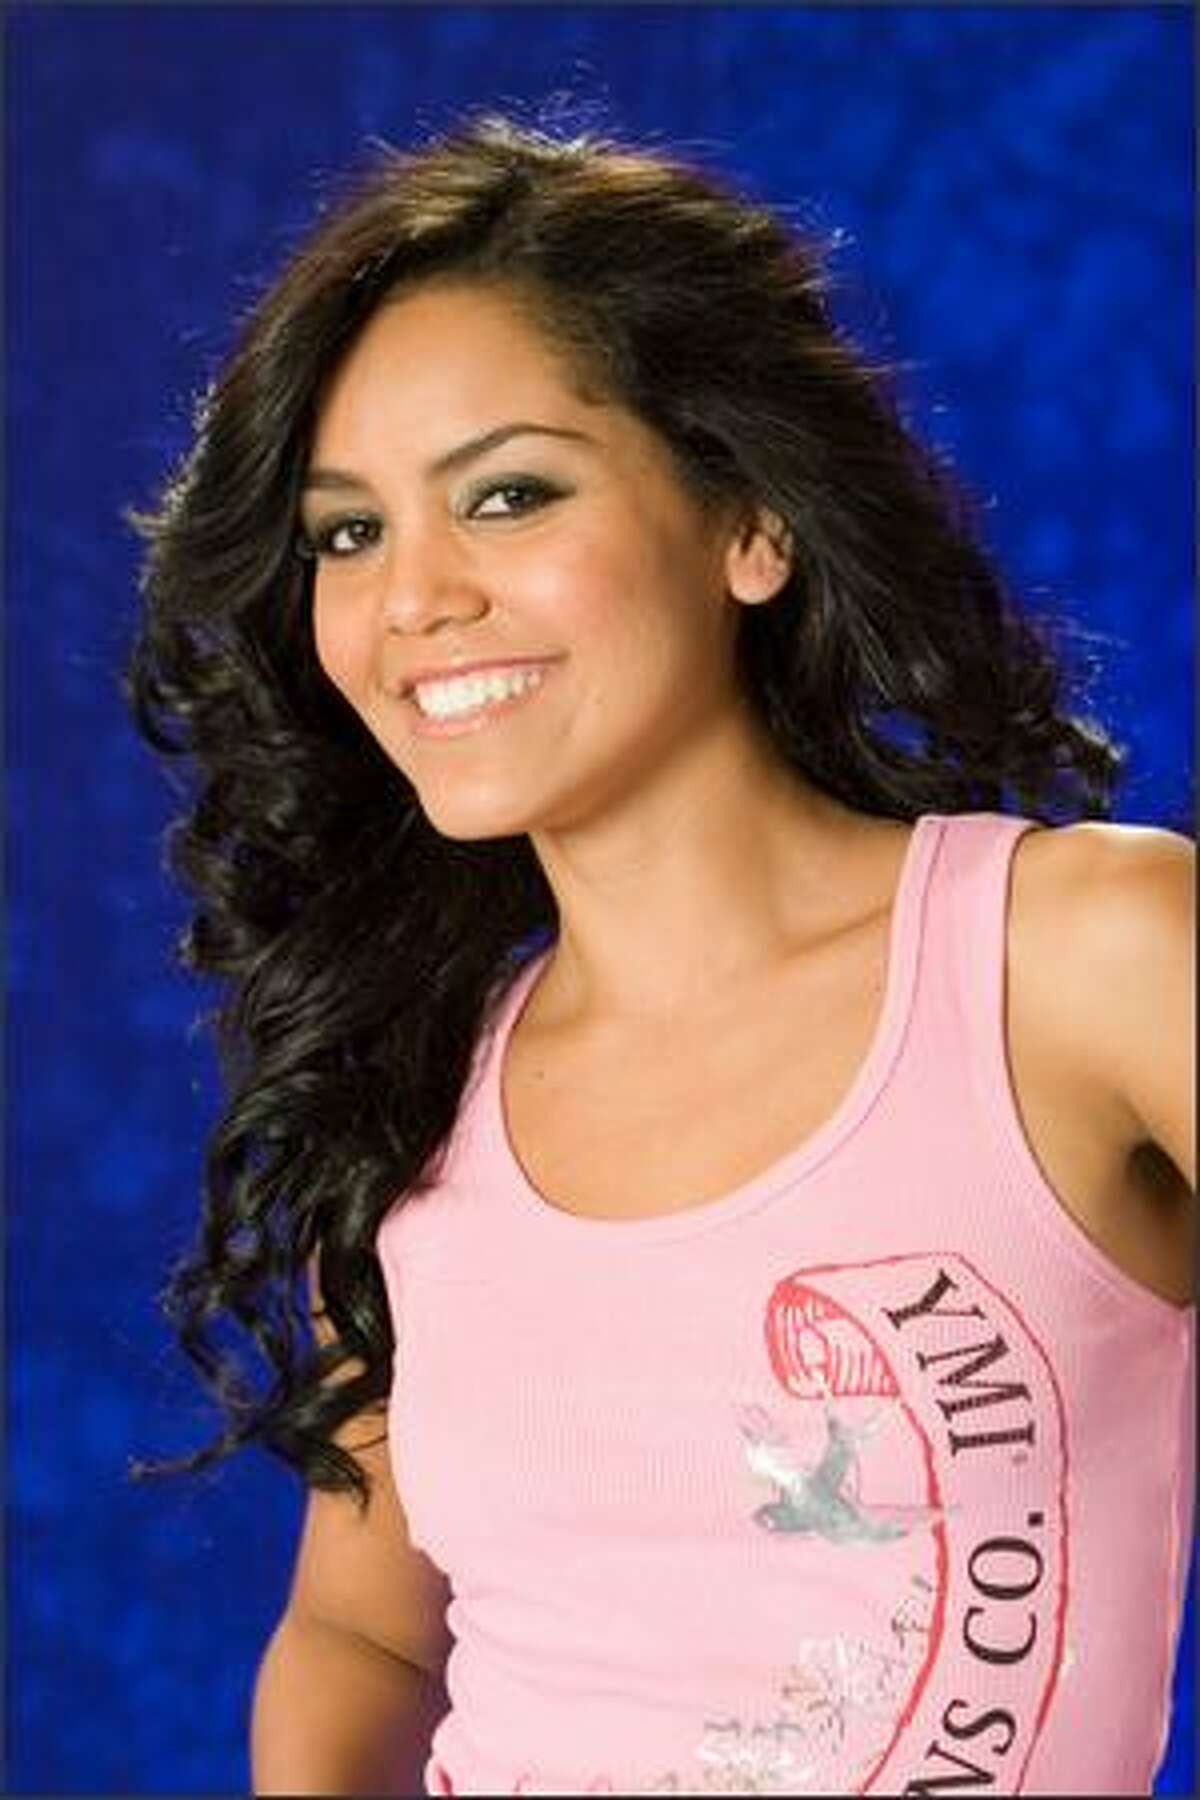 Wendy Salgado, Miss Honduras 2007, poses in her YMI Jeanswear at the Camino Real Mexico in Mexico City on May 4. She will compete for the title of Miss Universe 2007 during the NBC broadcast of the 56th annual Miss Universe competition from Mexico City on May 28.